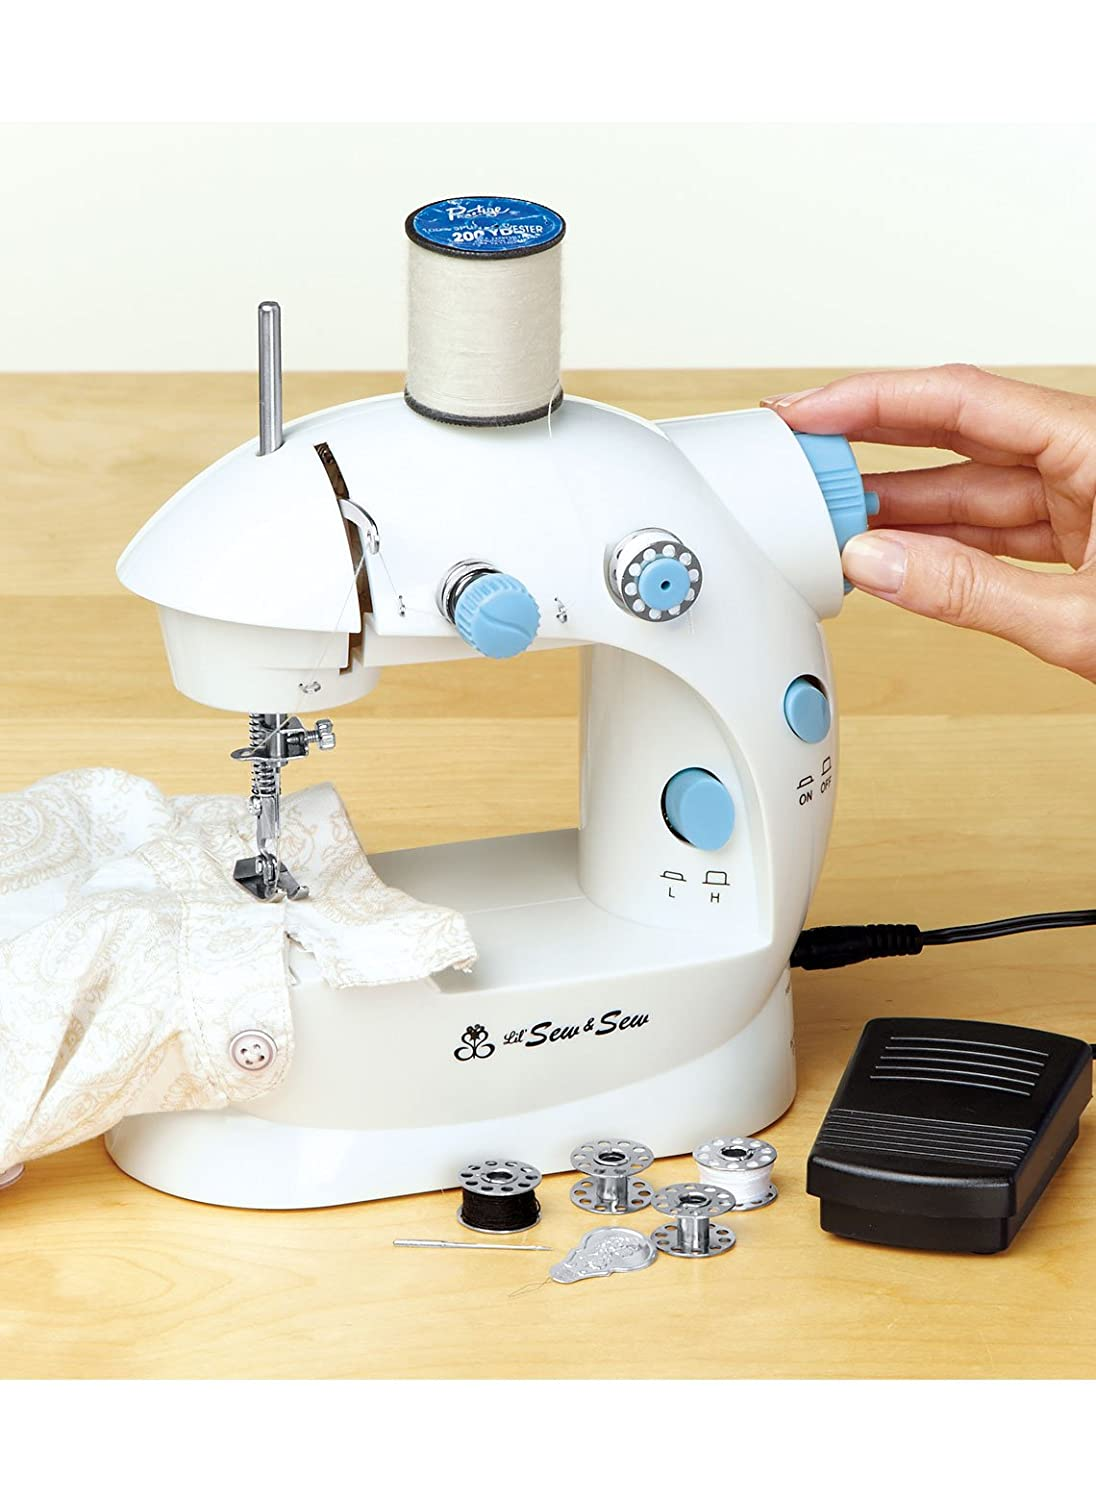 MICHLEY LSS-202 Lil' Sew & Sew Mini 2-Speed Sewing Machine, White